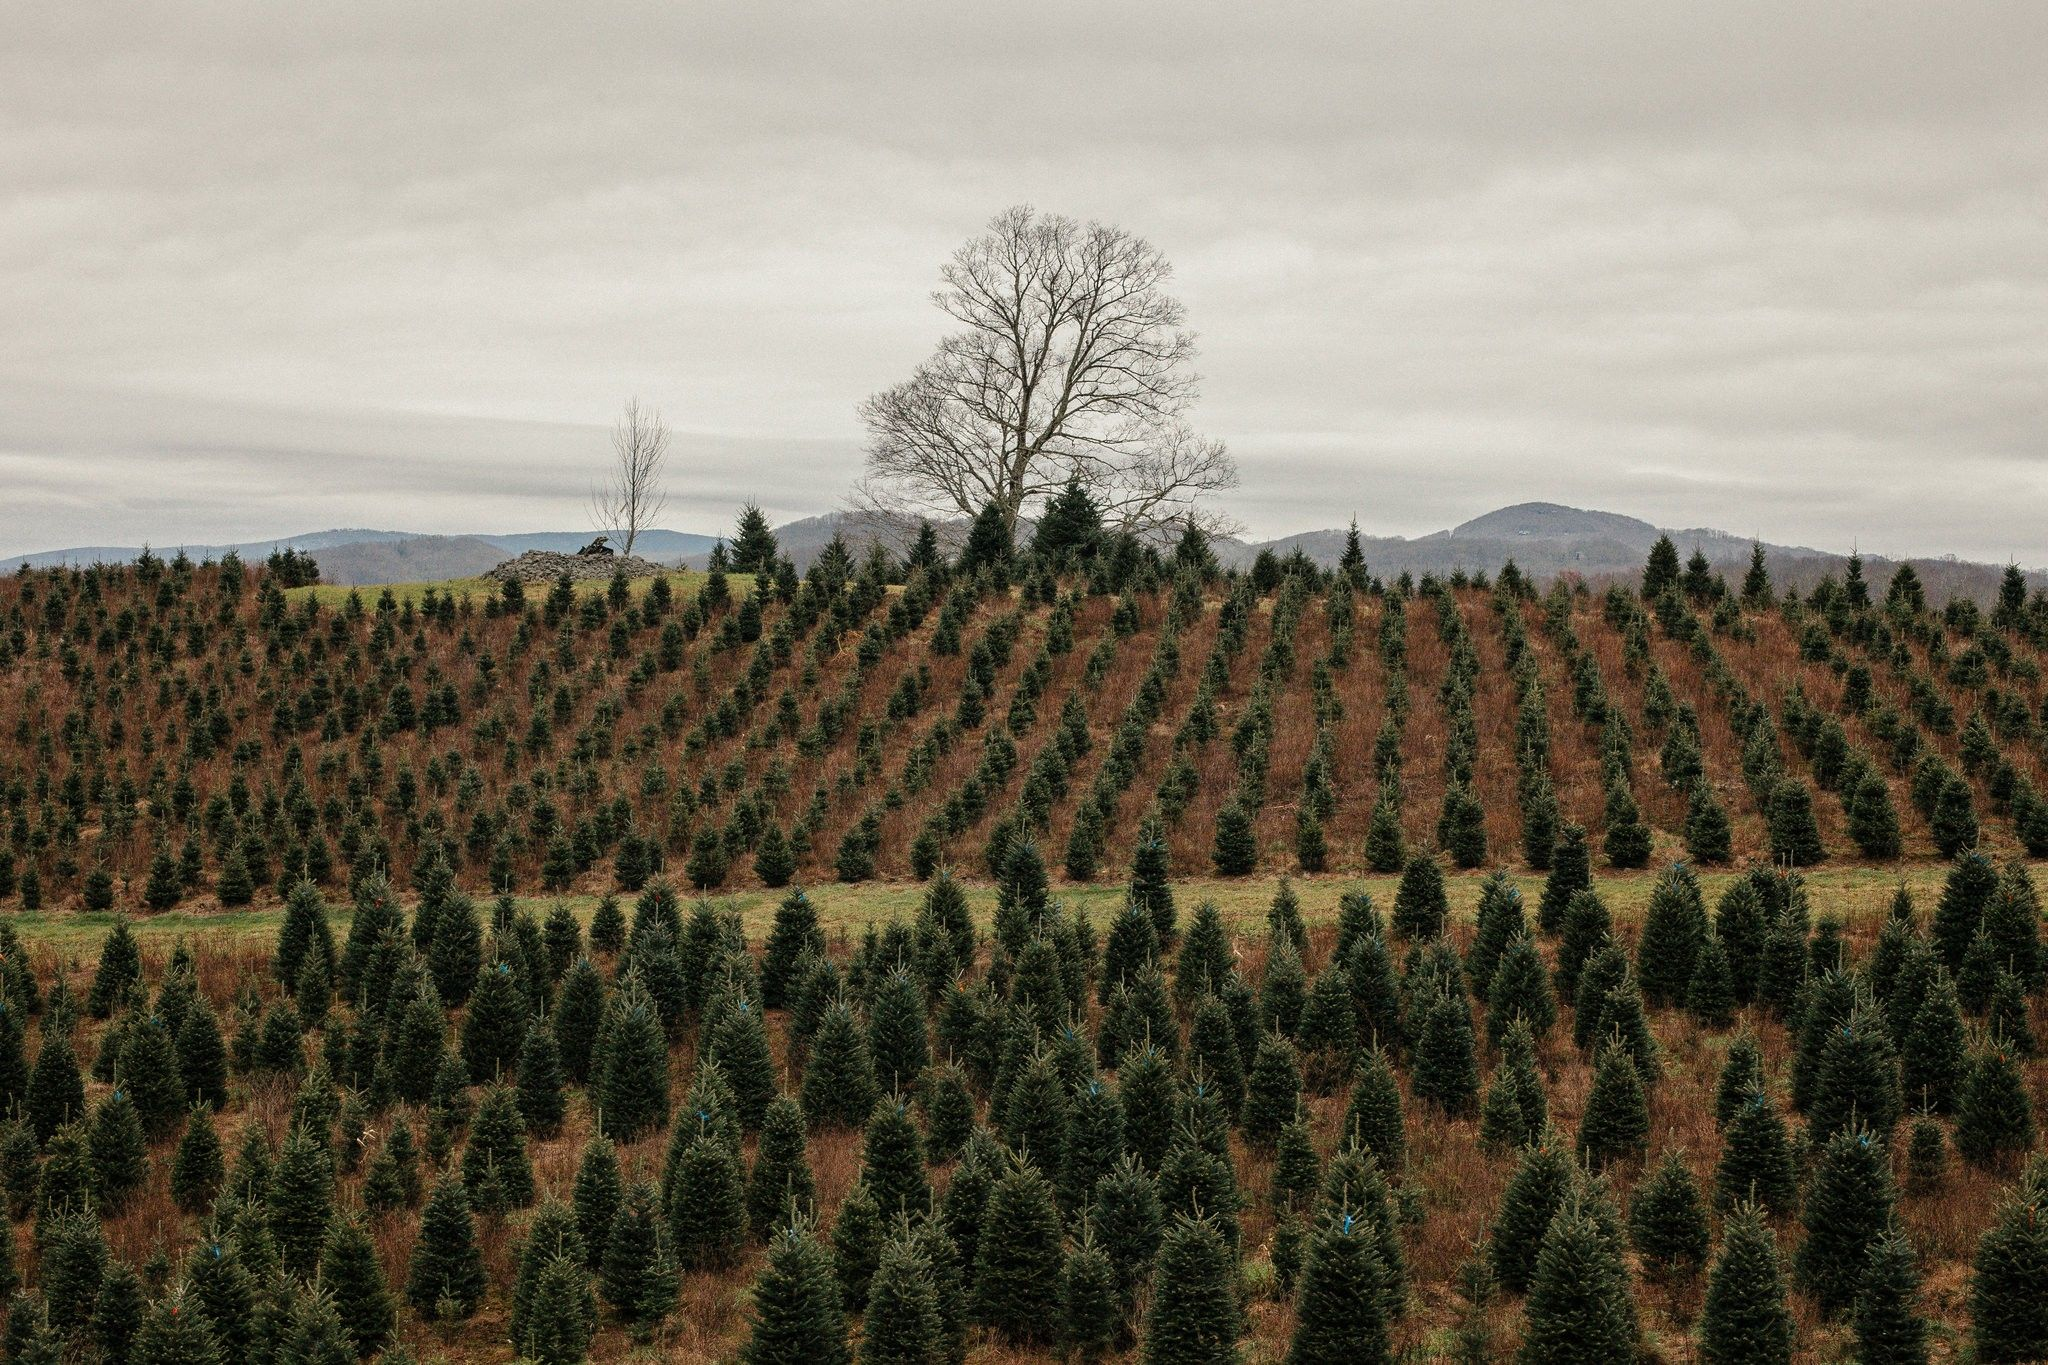 Real Vs Artificial Christmas Trees Which Is The Greener Choice Green Choices Fake Christmas Trees Christmas Tree Farm